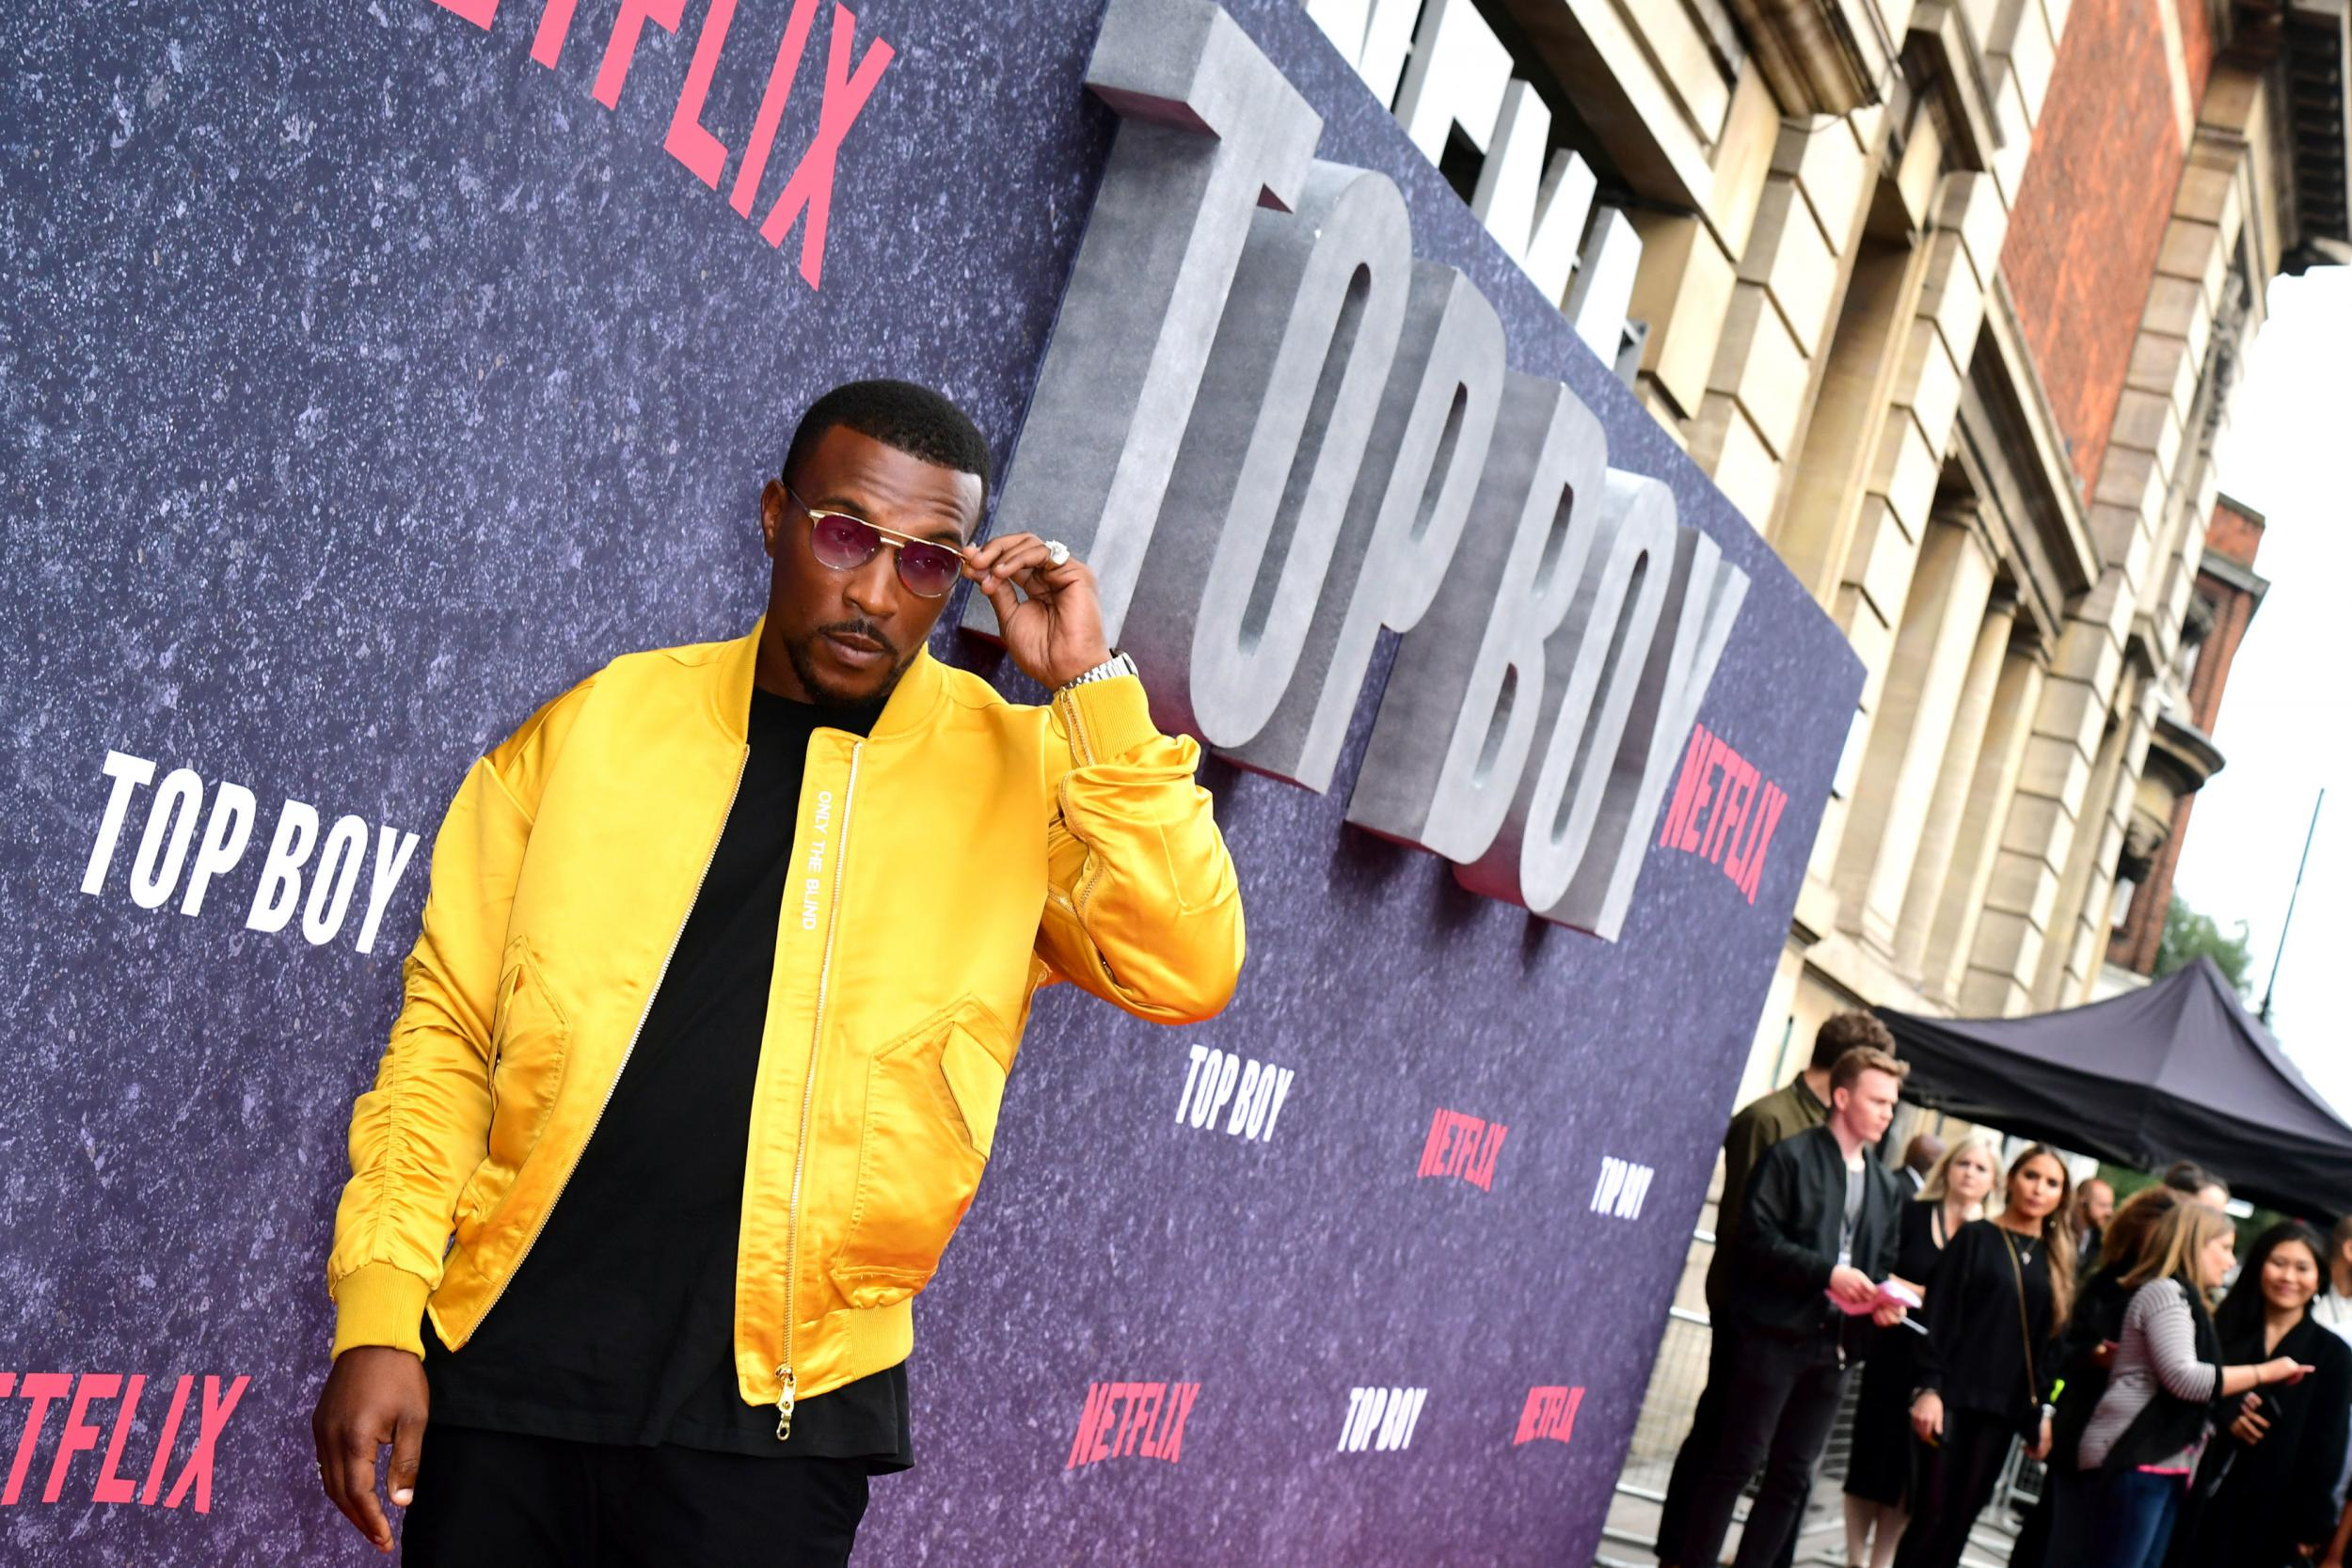 NEW SERIES OF TOP BOY CROWNED 'BEST EVER'